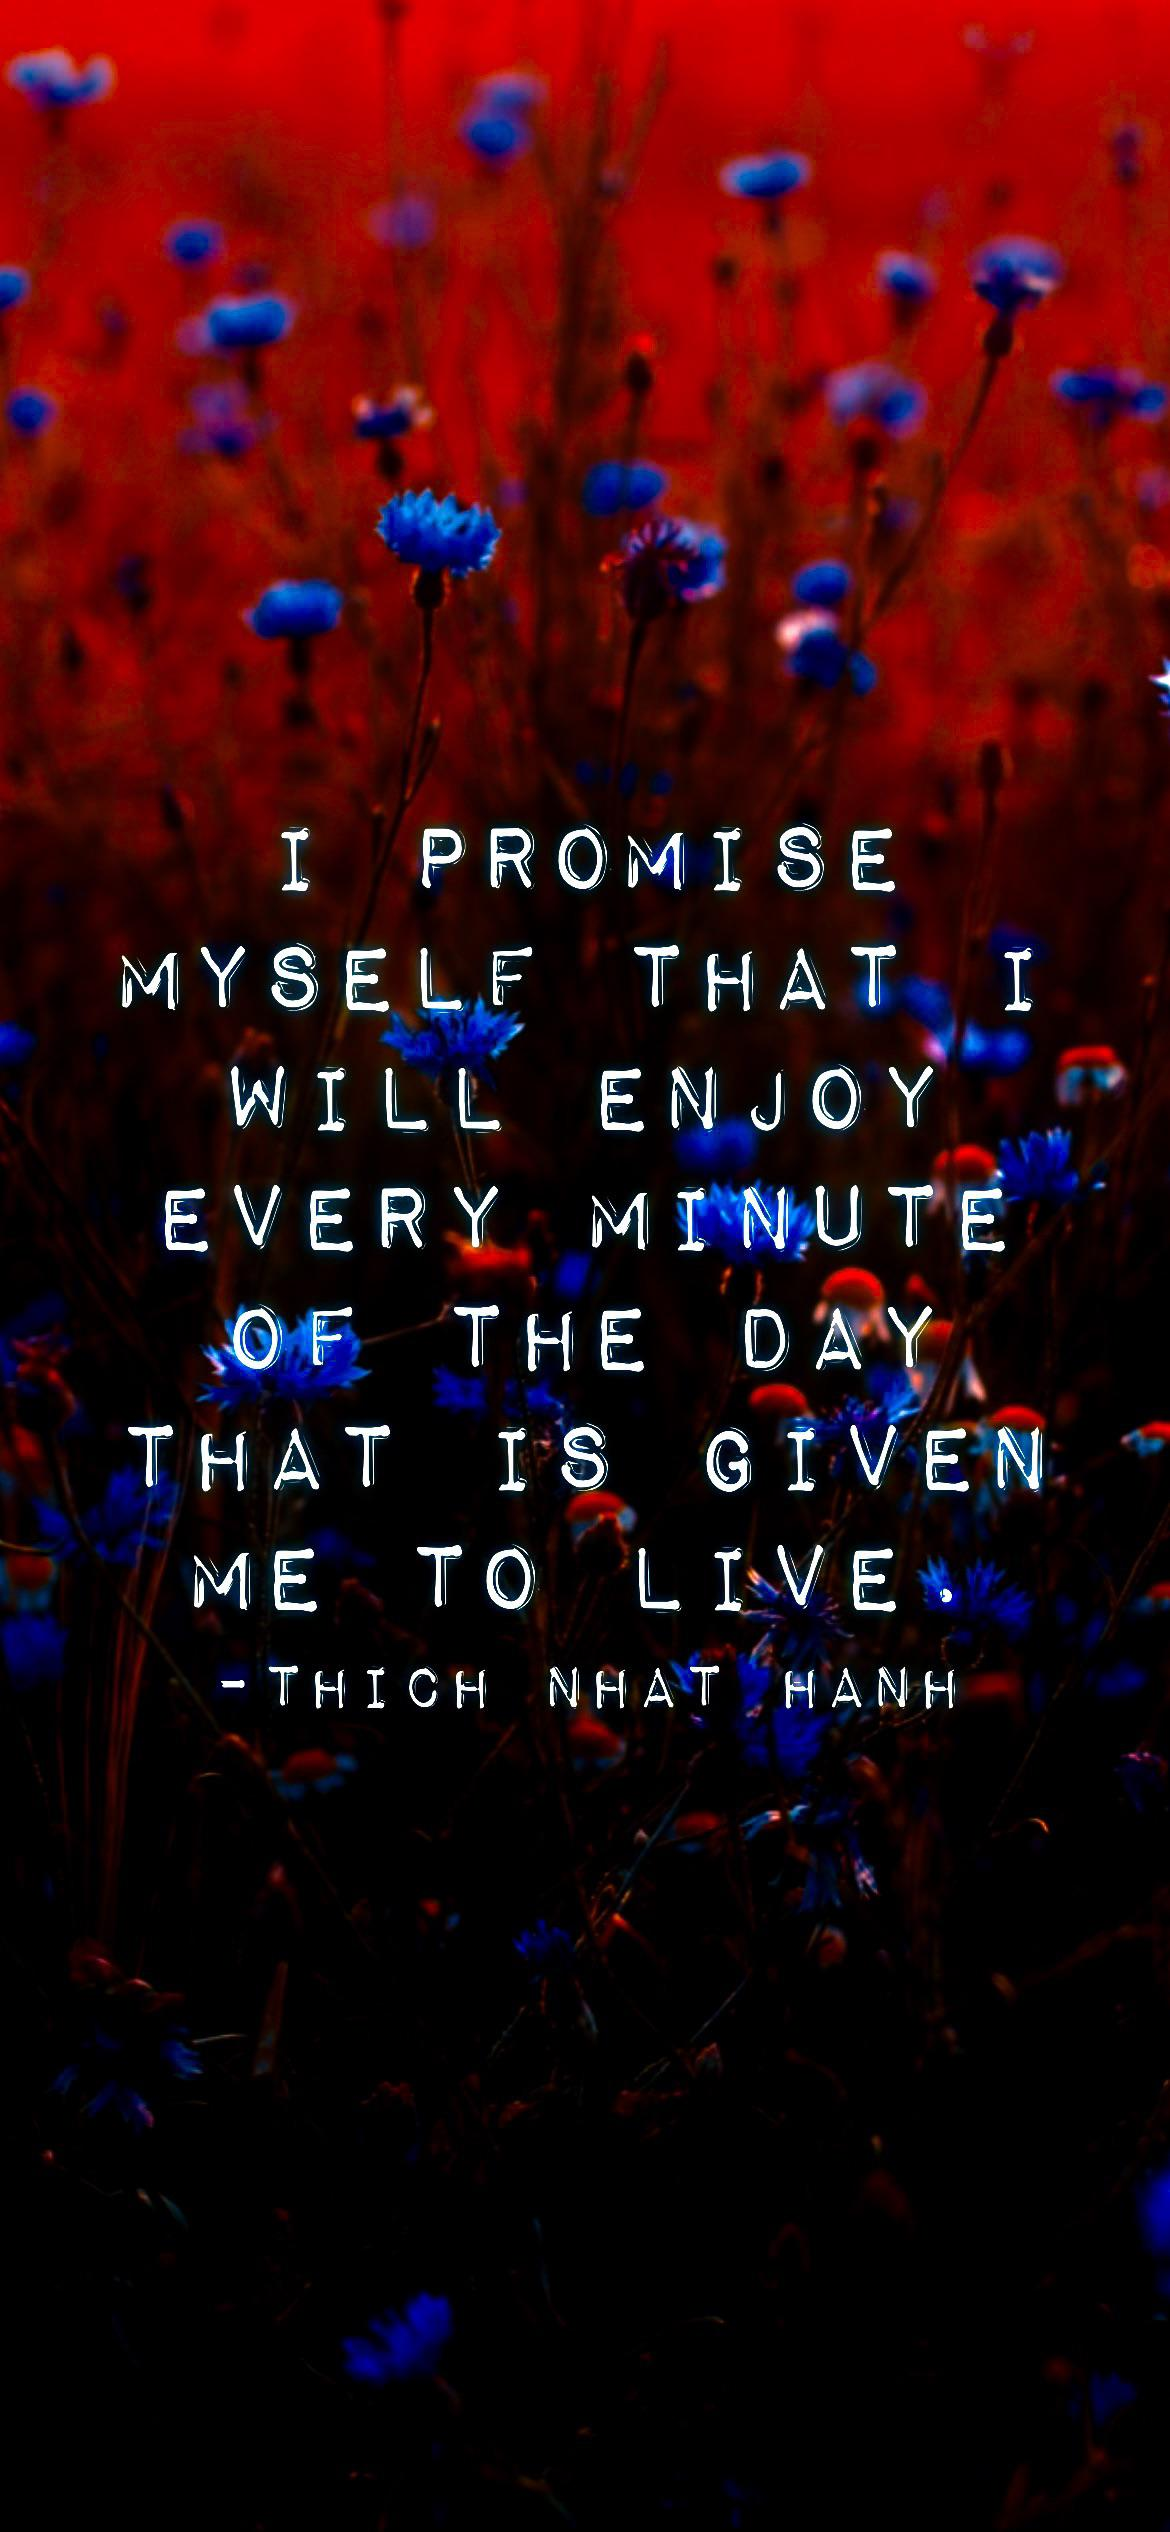 I promise myself that I will enjoy every minute of the day that is given me to live. -Thich Nhat Hanh [2532 x 1170p]